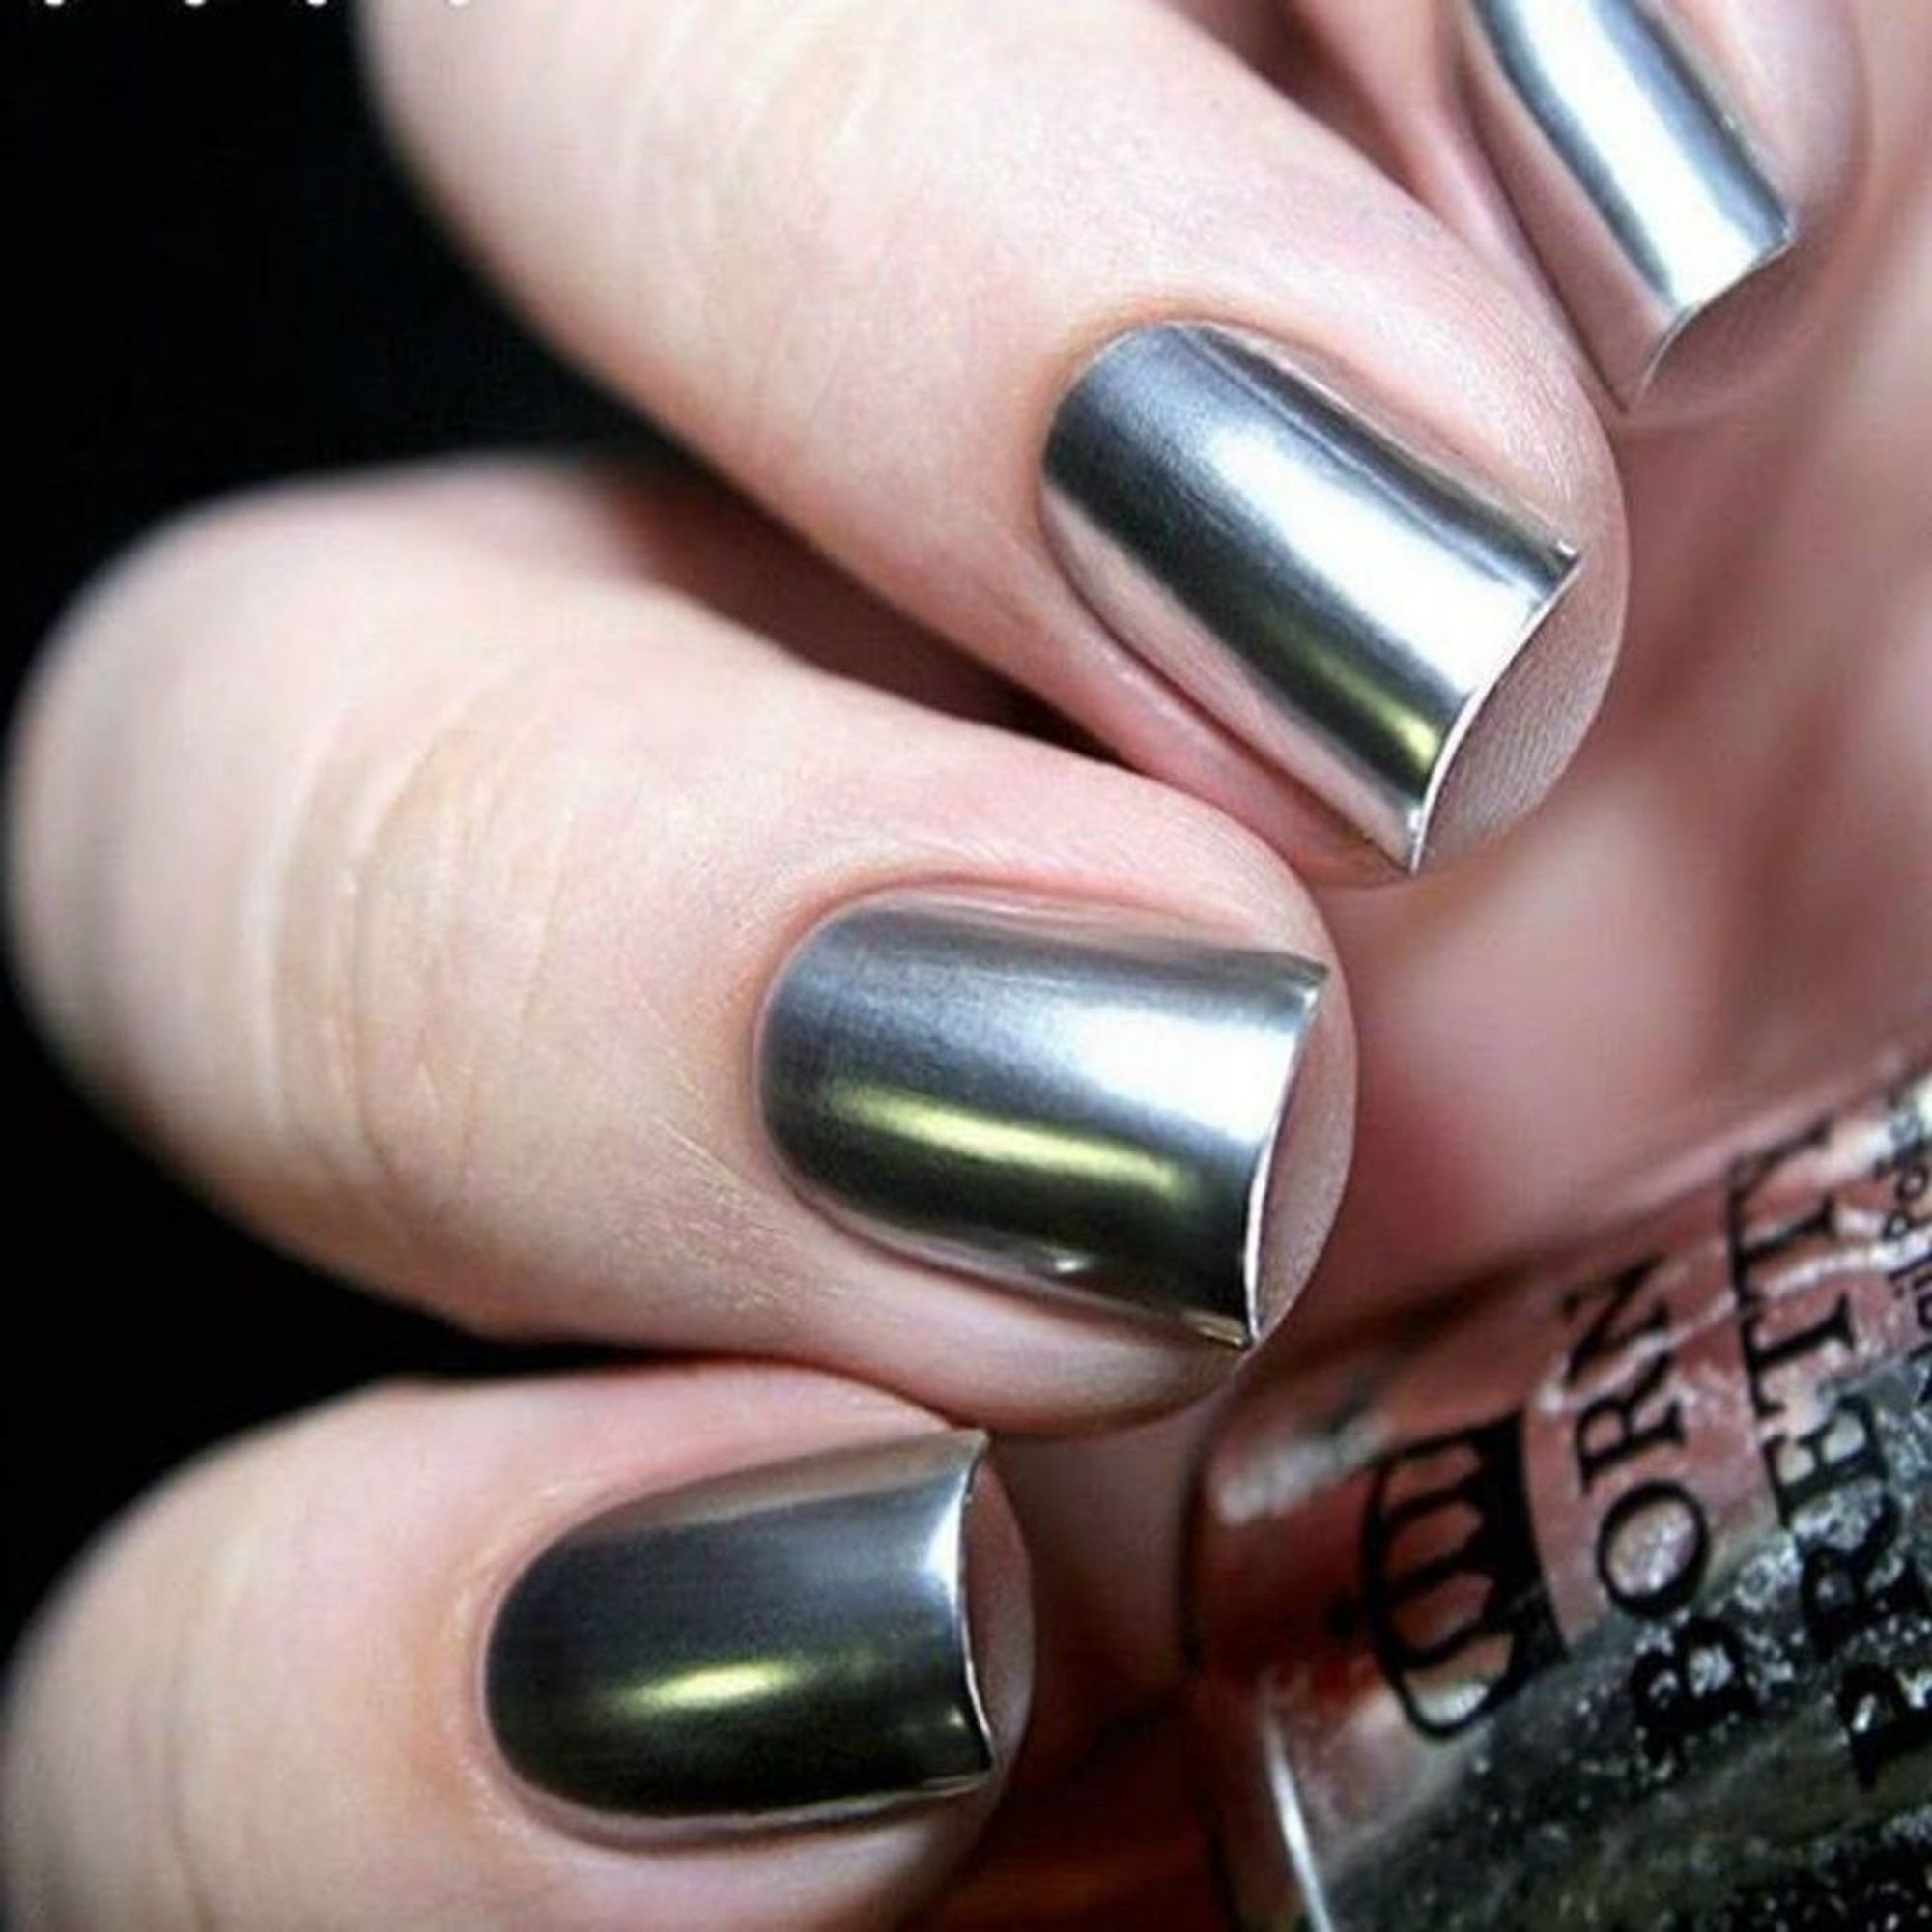 Ballet Slipper - Soft Pink Holographic Nail Polish by ILNP